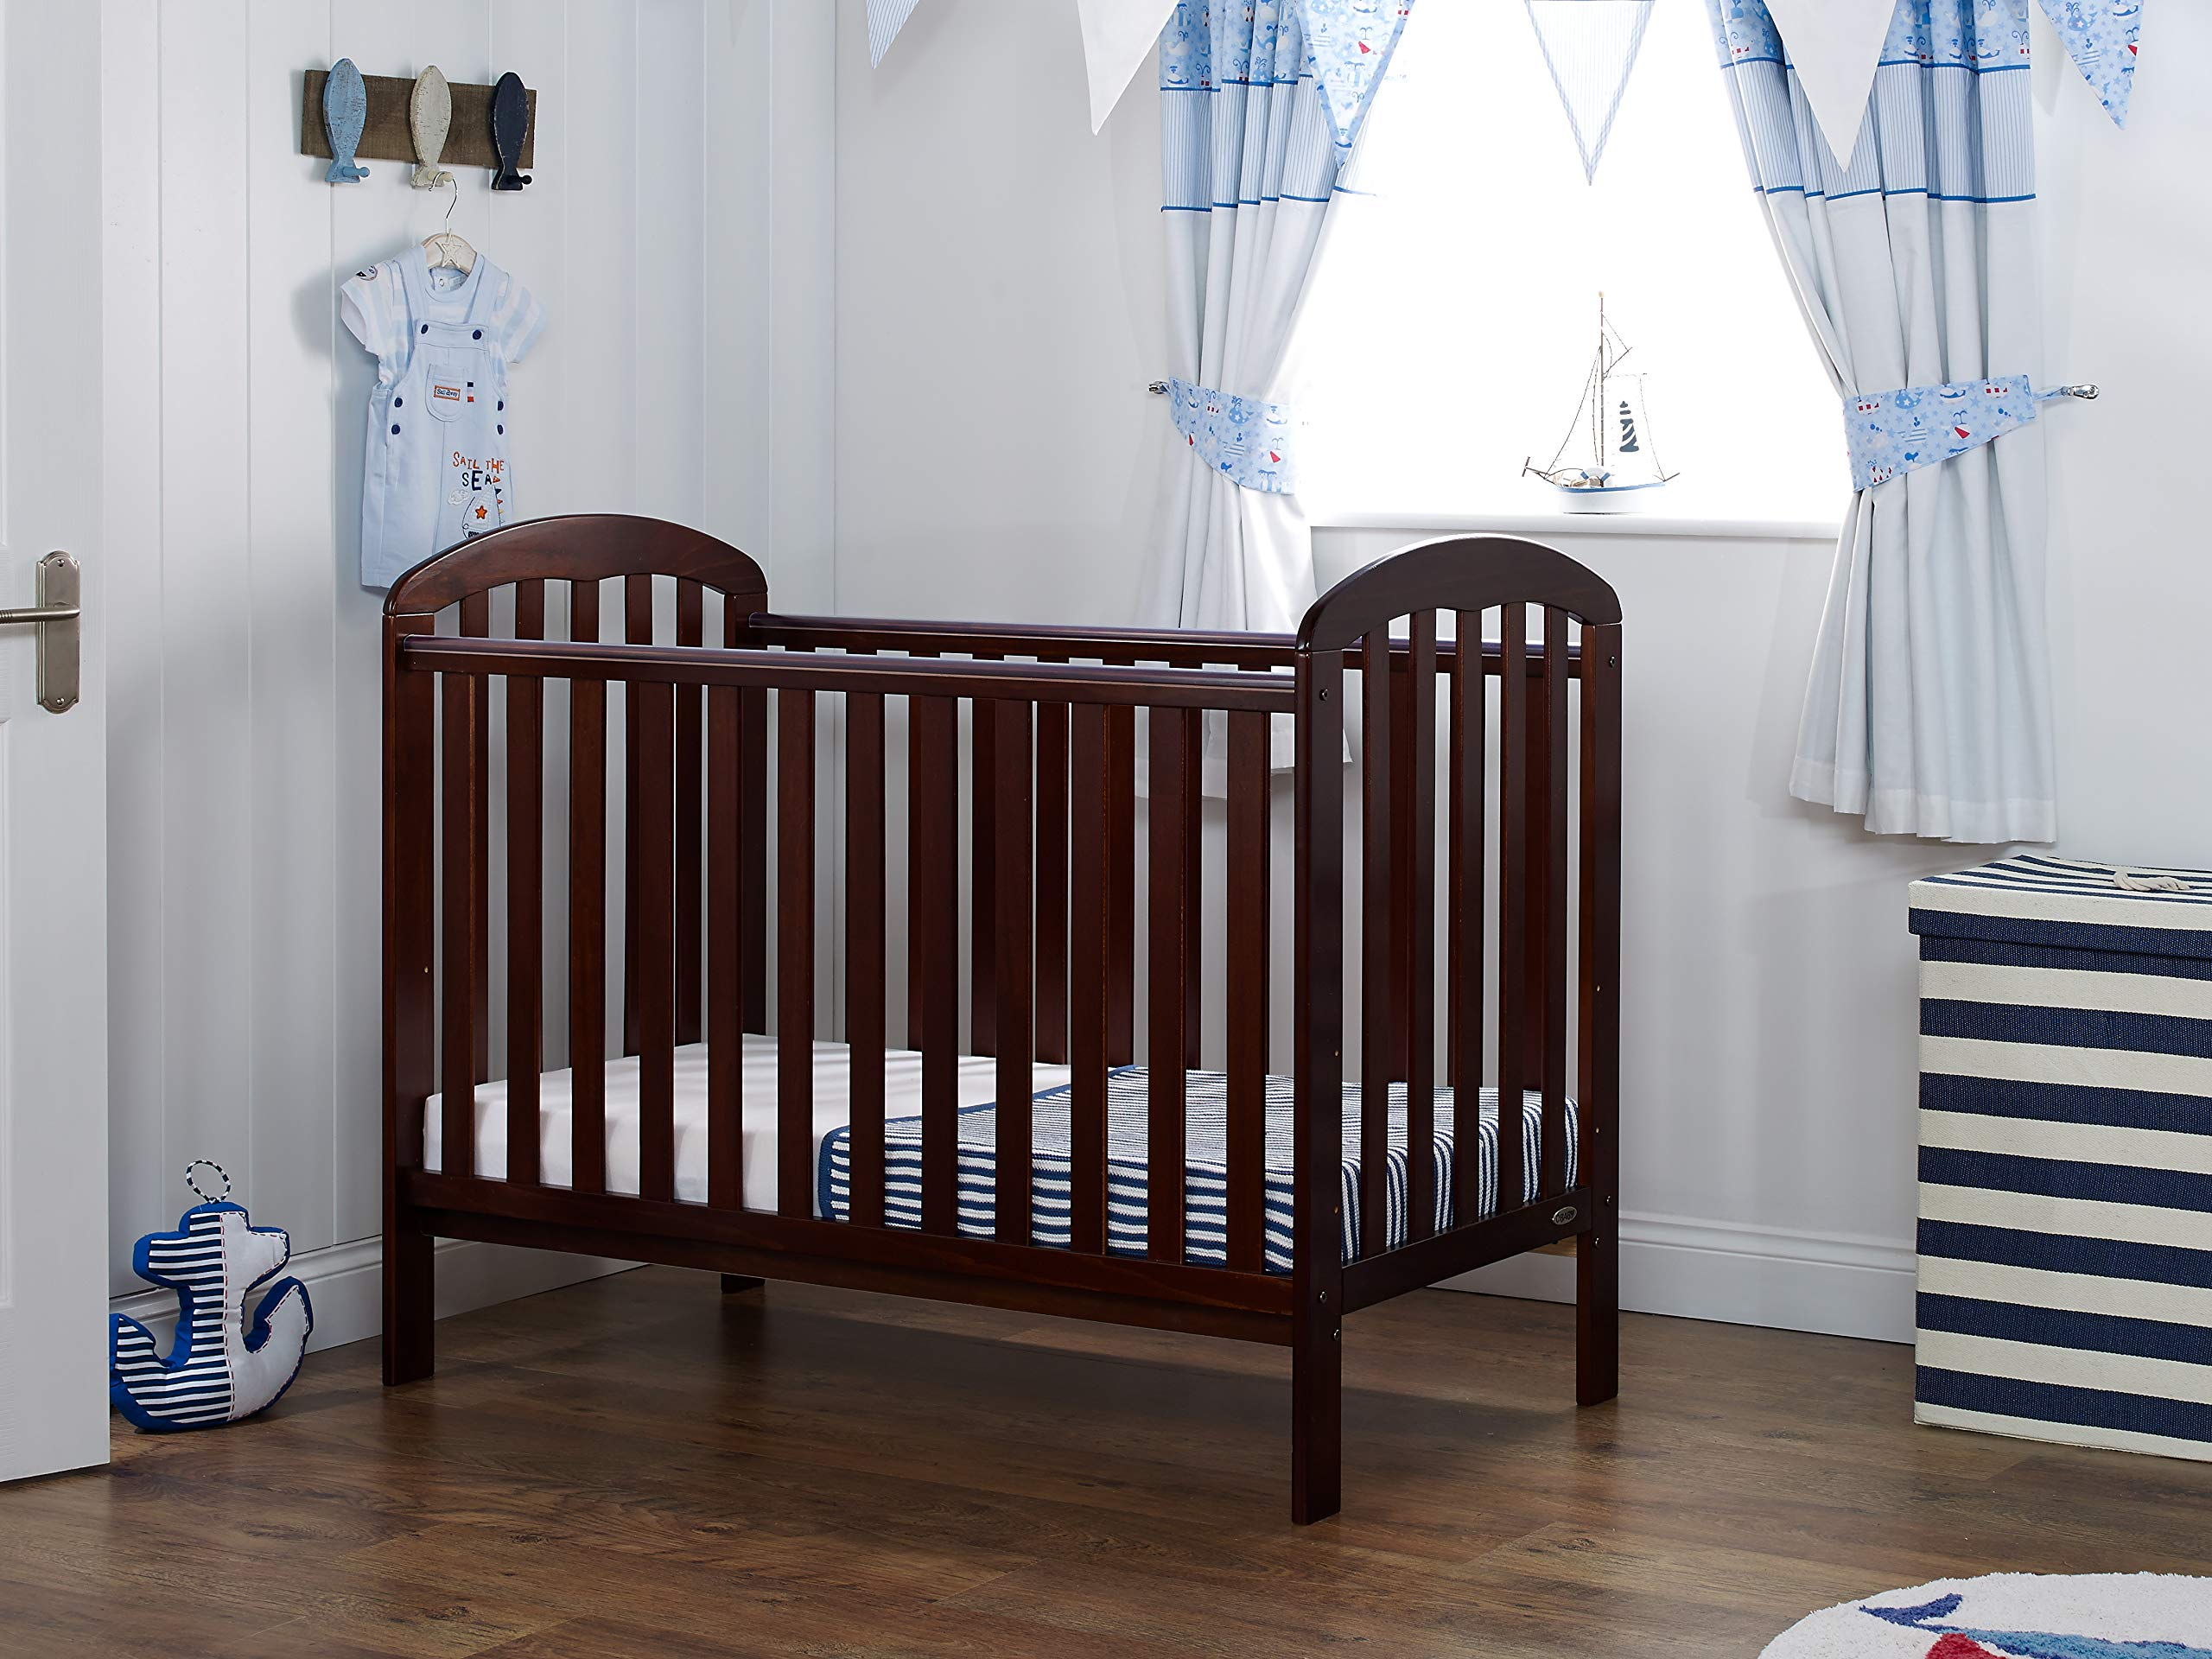 Obaby Lily Cot - Walnut Obaby Protective teething rails 3 position base height Requires mattress size 120 x 60cm 1